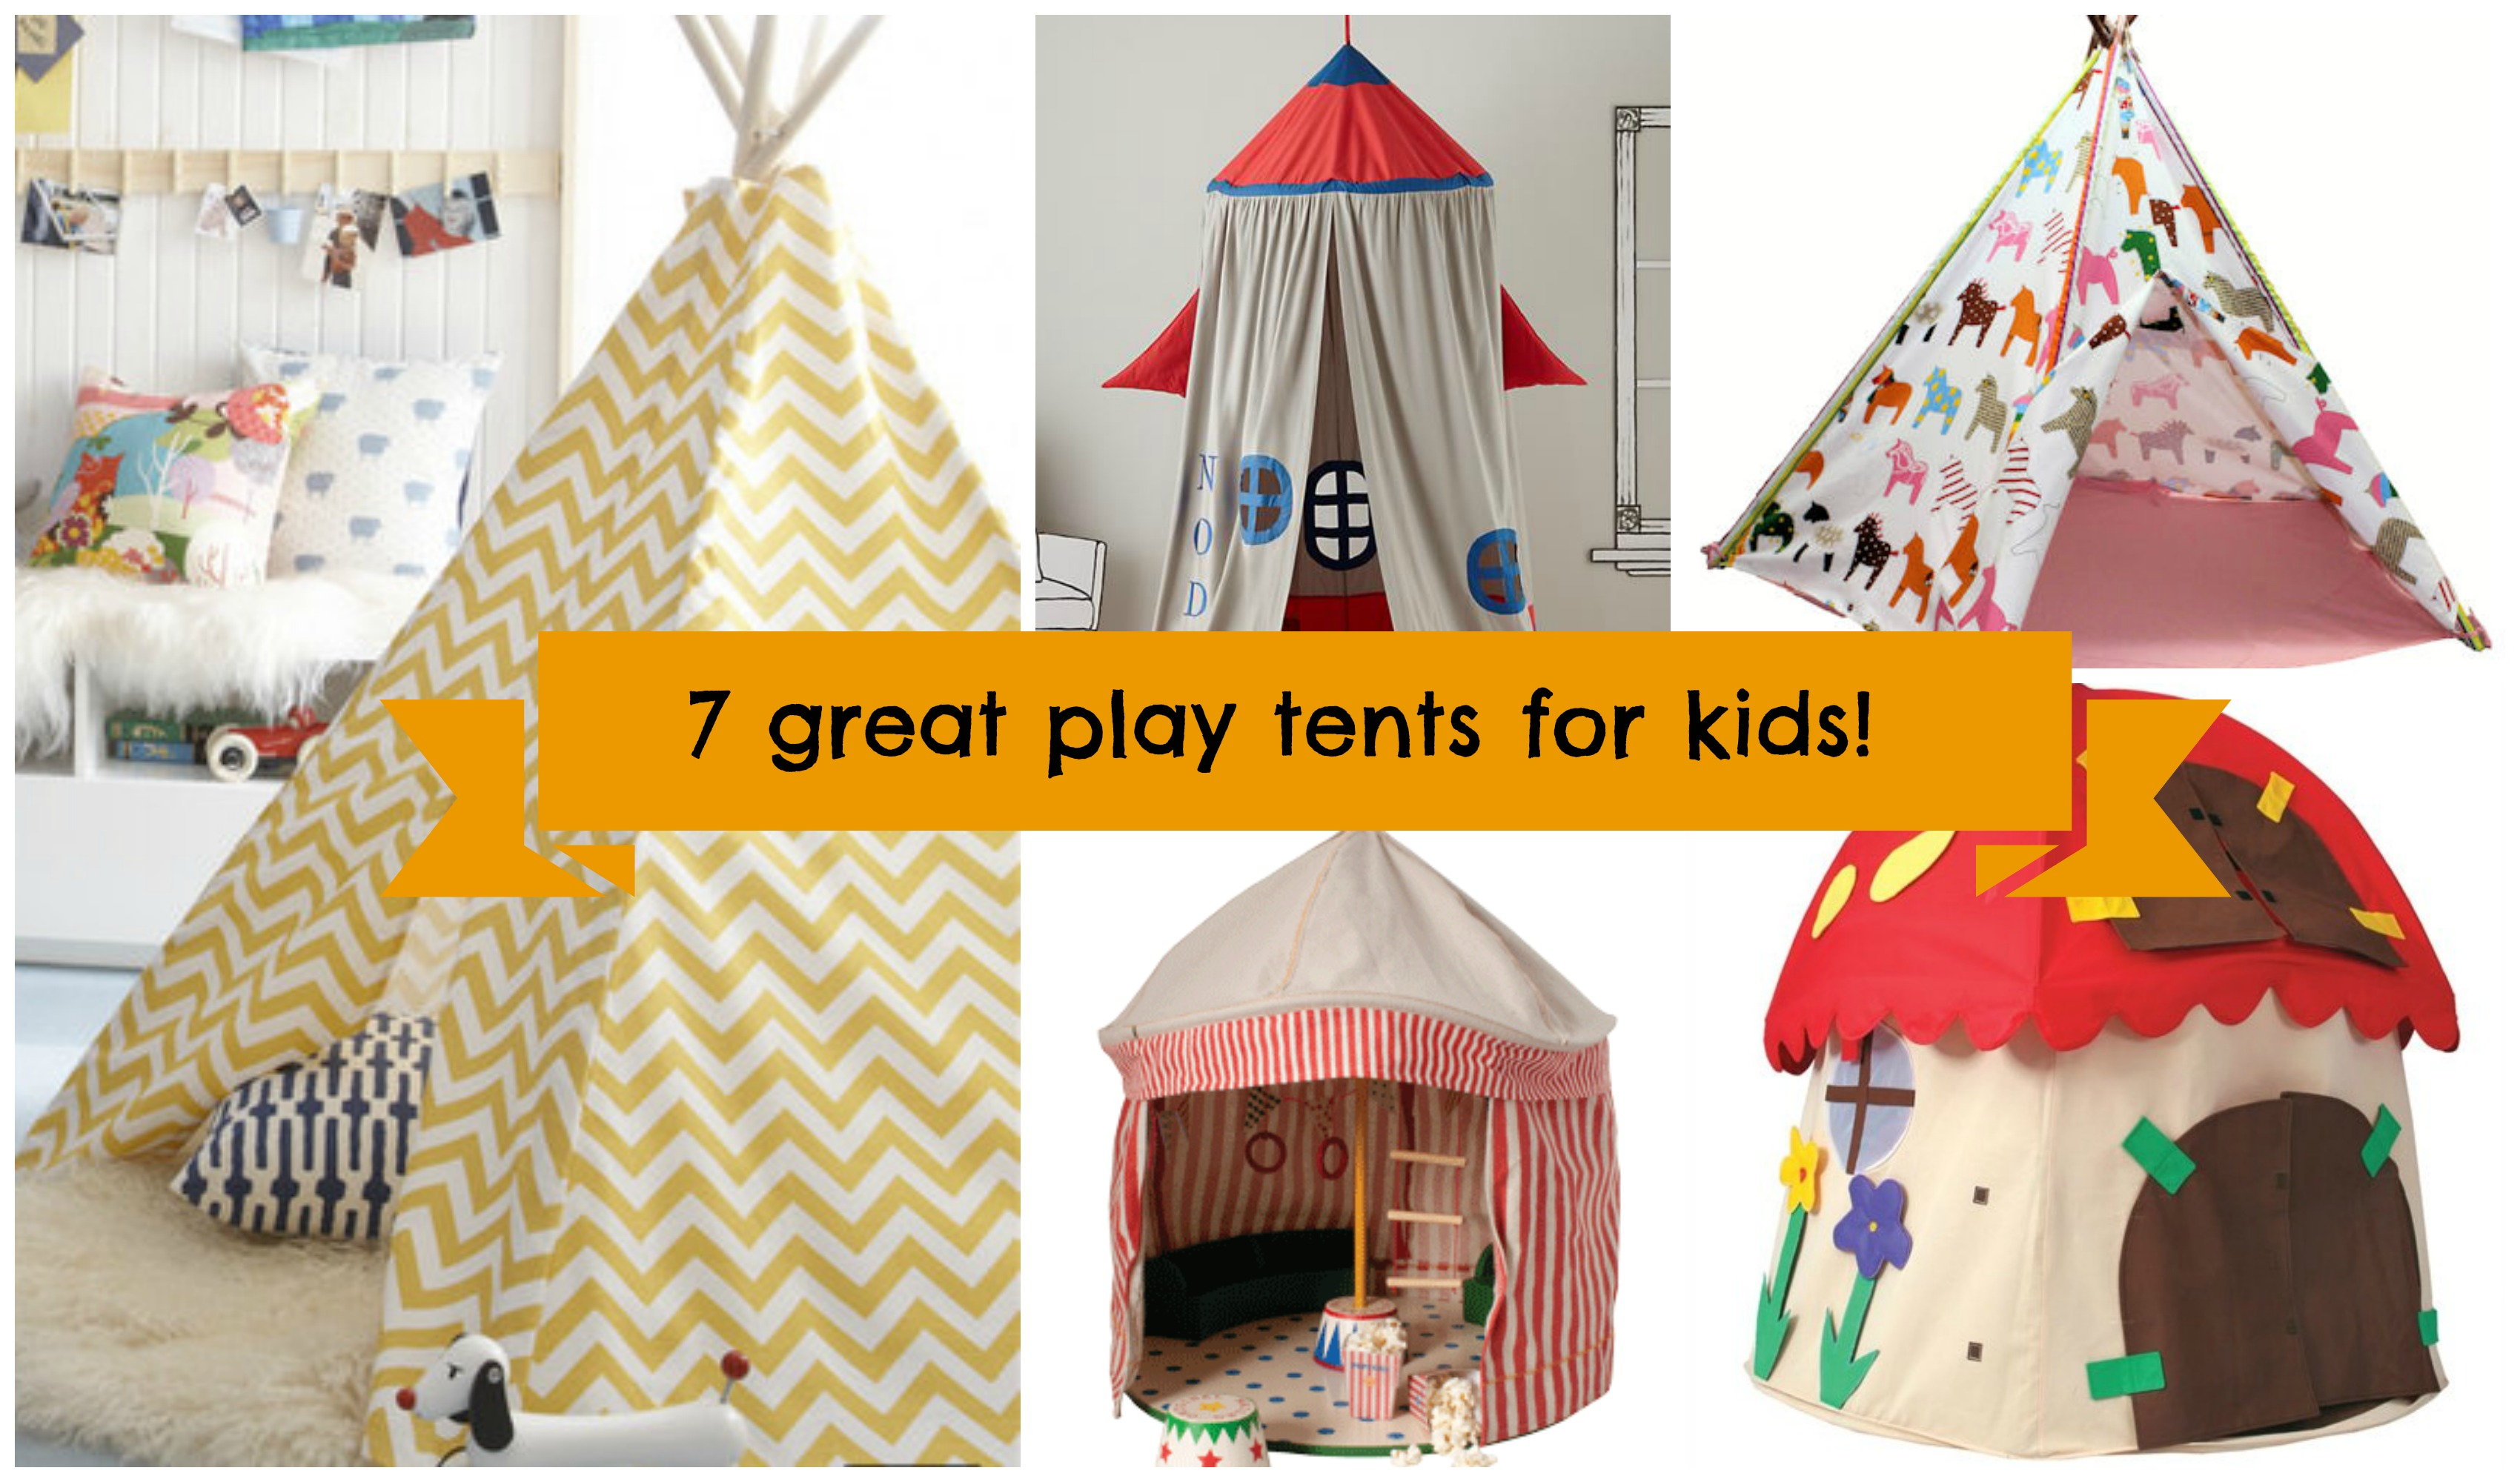 Glomorous Play Pees Play Tents Beds Kids Play Tents Sunjoy Group Teepees Kids Savvy Sassy Moms Kids Play Tents baby Kids Play Tents